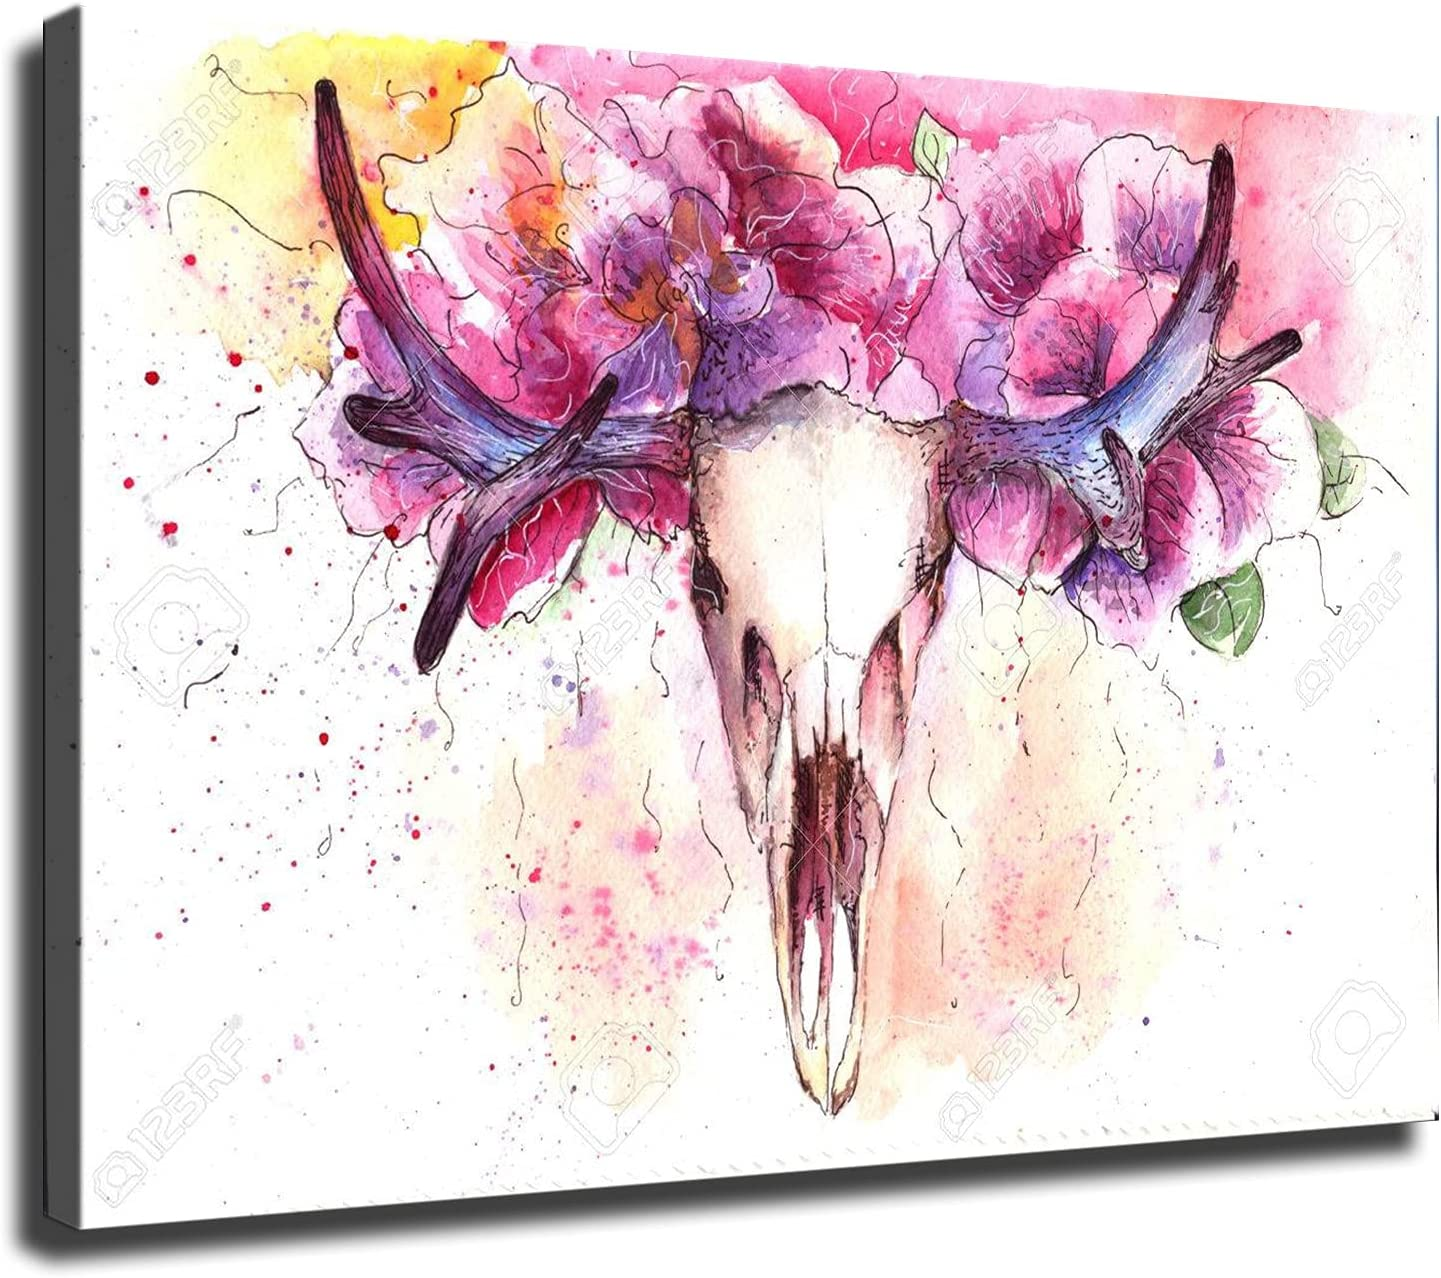 Water Color Deer Skull and Horn Flower Poster Picture Art Print Canvas Wall Art Home Living Room Bedroom Decor Mural (20×30inch-No Framed)